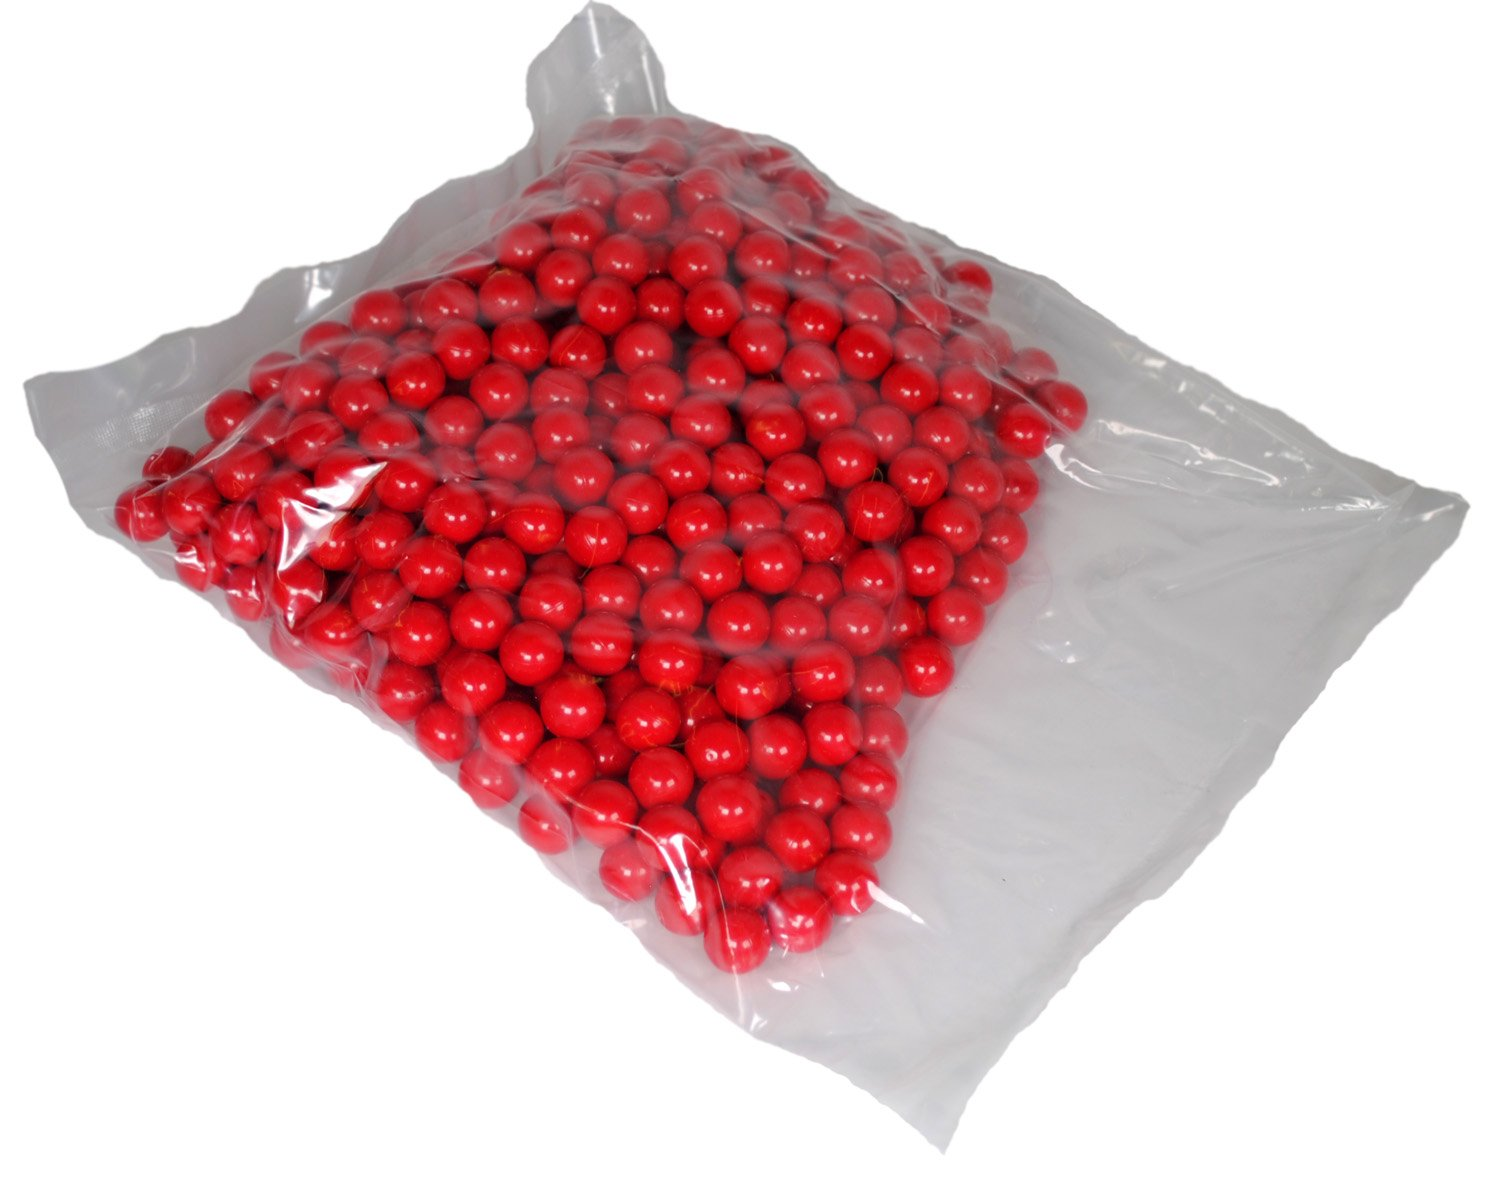 Shop4Paintball - .68 Caliber Scenario/General Play Paintballs (Blood Ball (Red/Red), Bag of 500) by Shop4Paintball